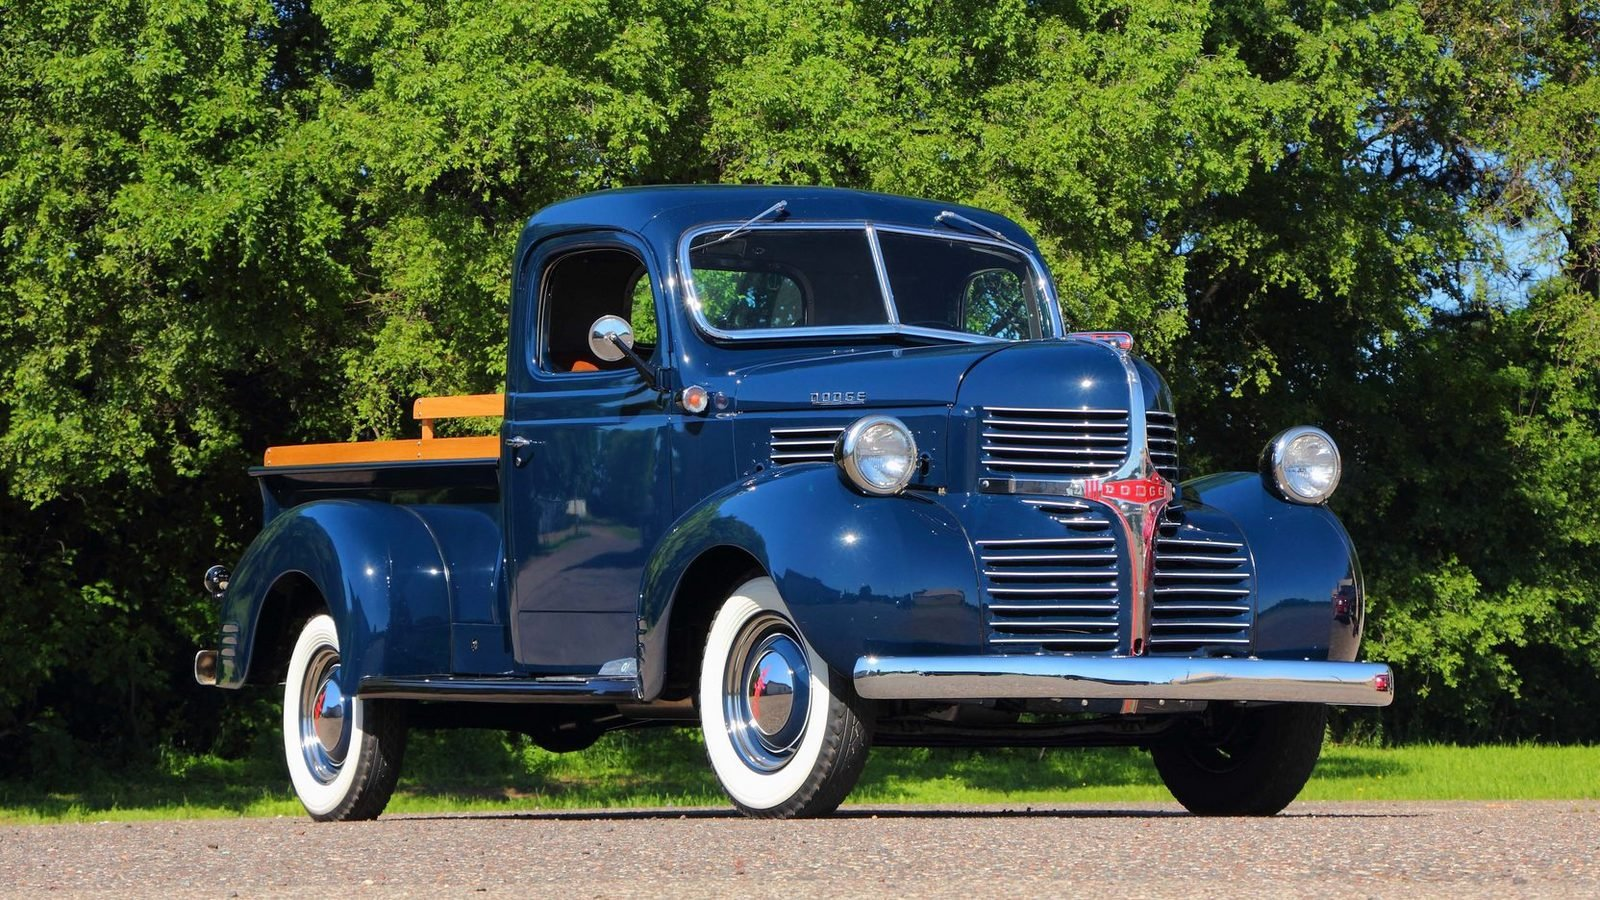 1945 dodge pickup picture 683320 truck review top speed. Black Bedroom Furniture Sets. Home Design Ideas